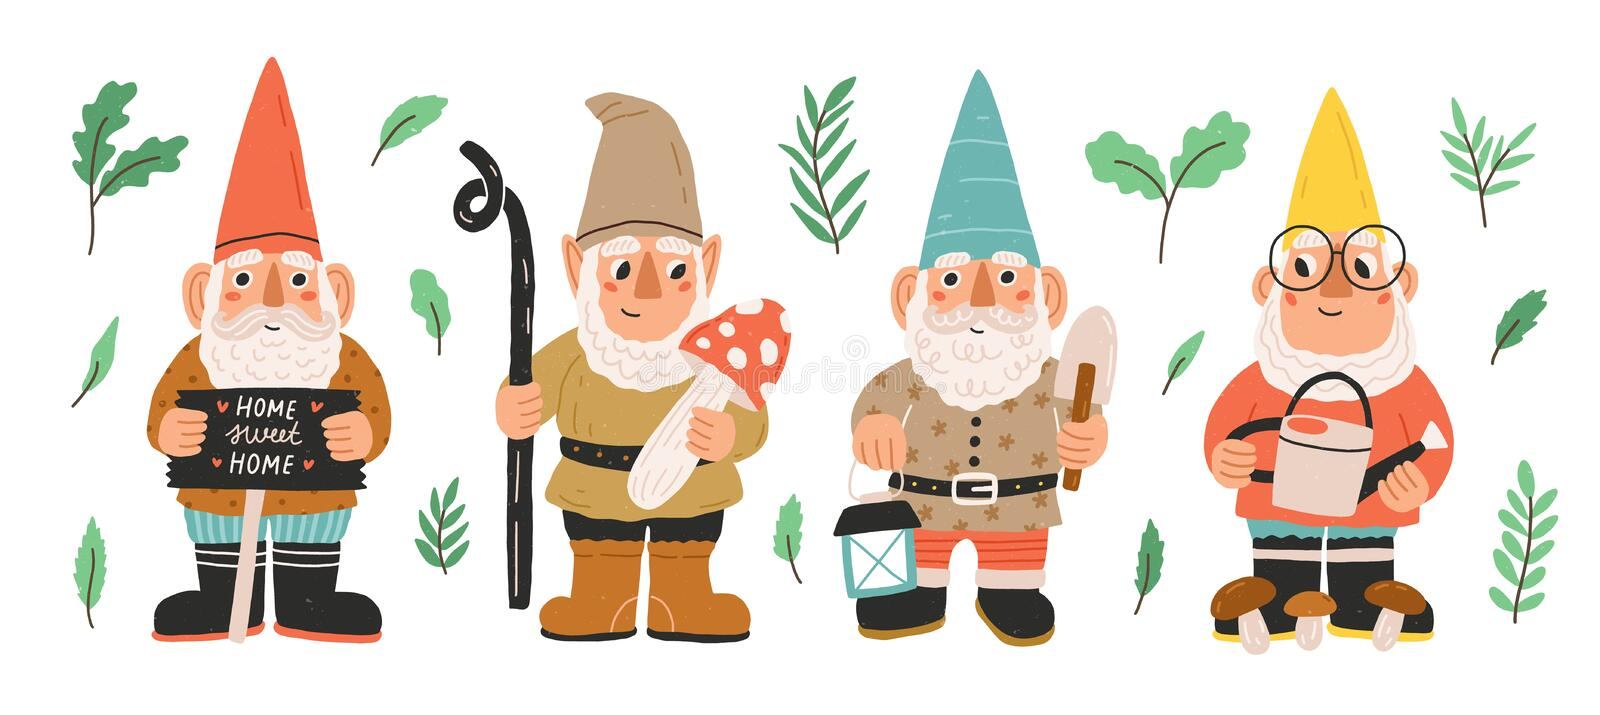 Collection of garden gnomes or dwarfs holding lantern, banner, mushroom, watering can. Set of cute fairytale characters vector illustration